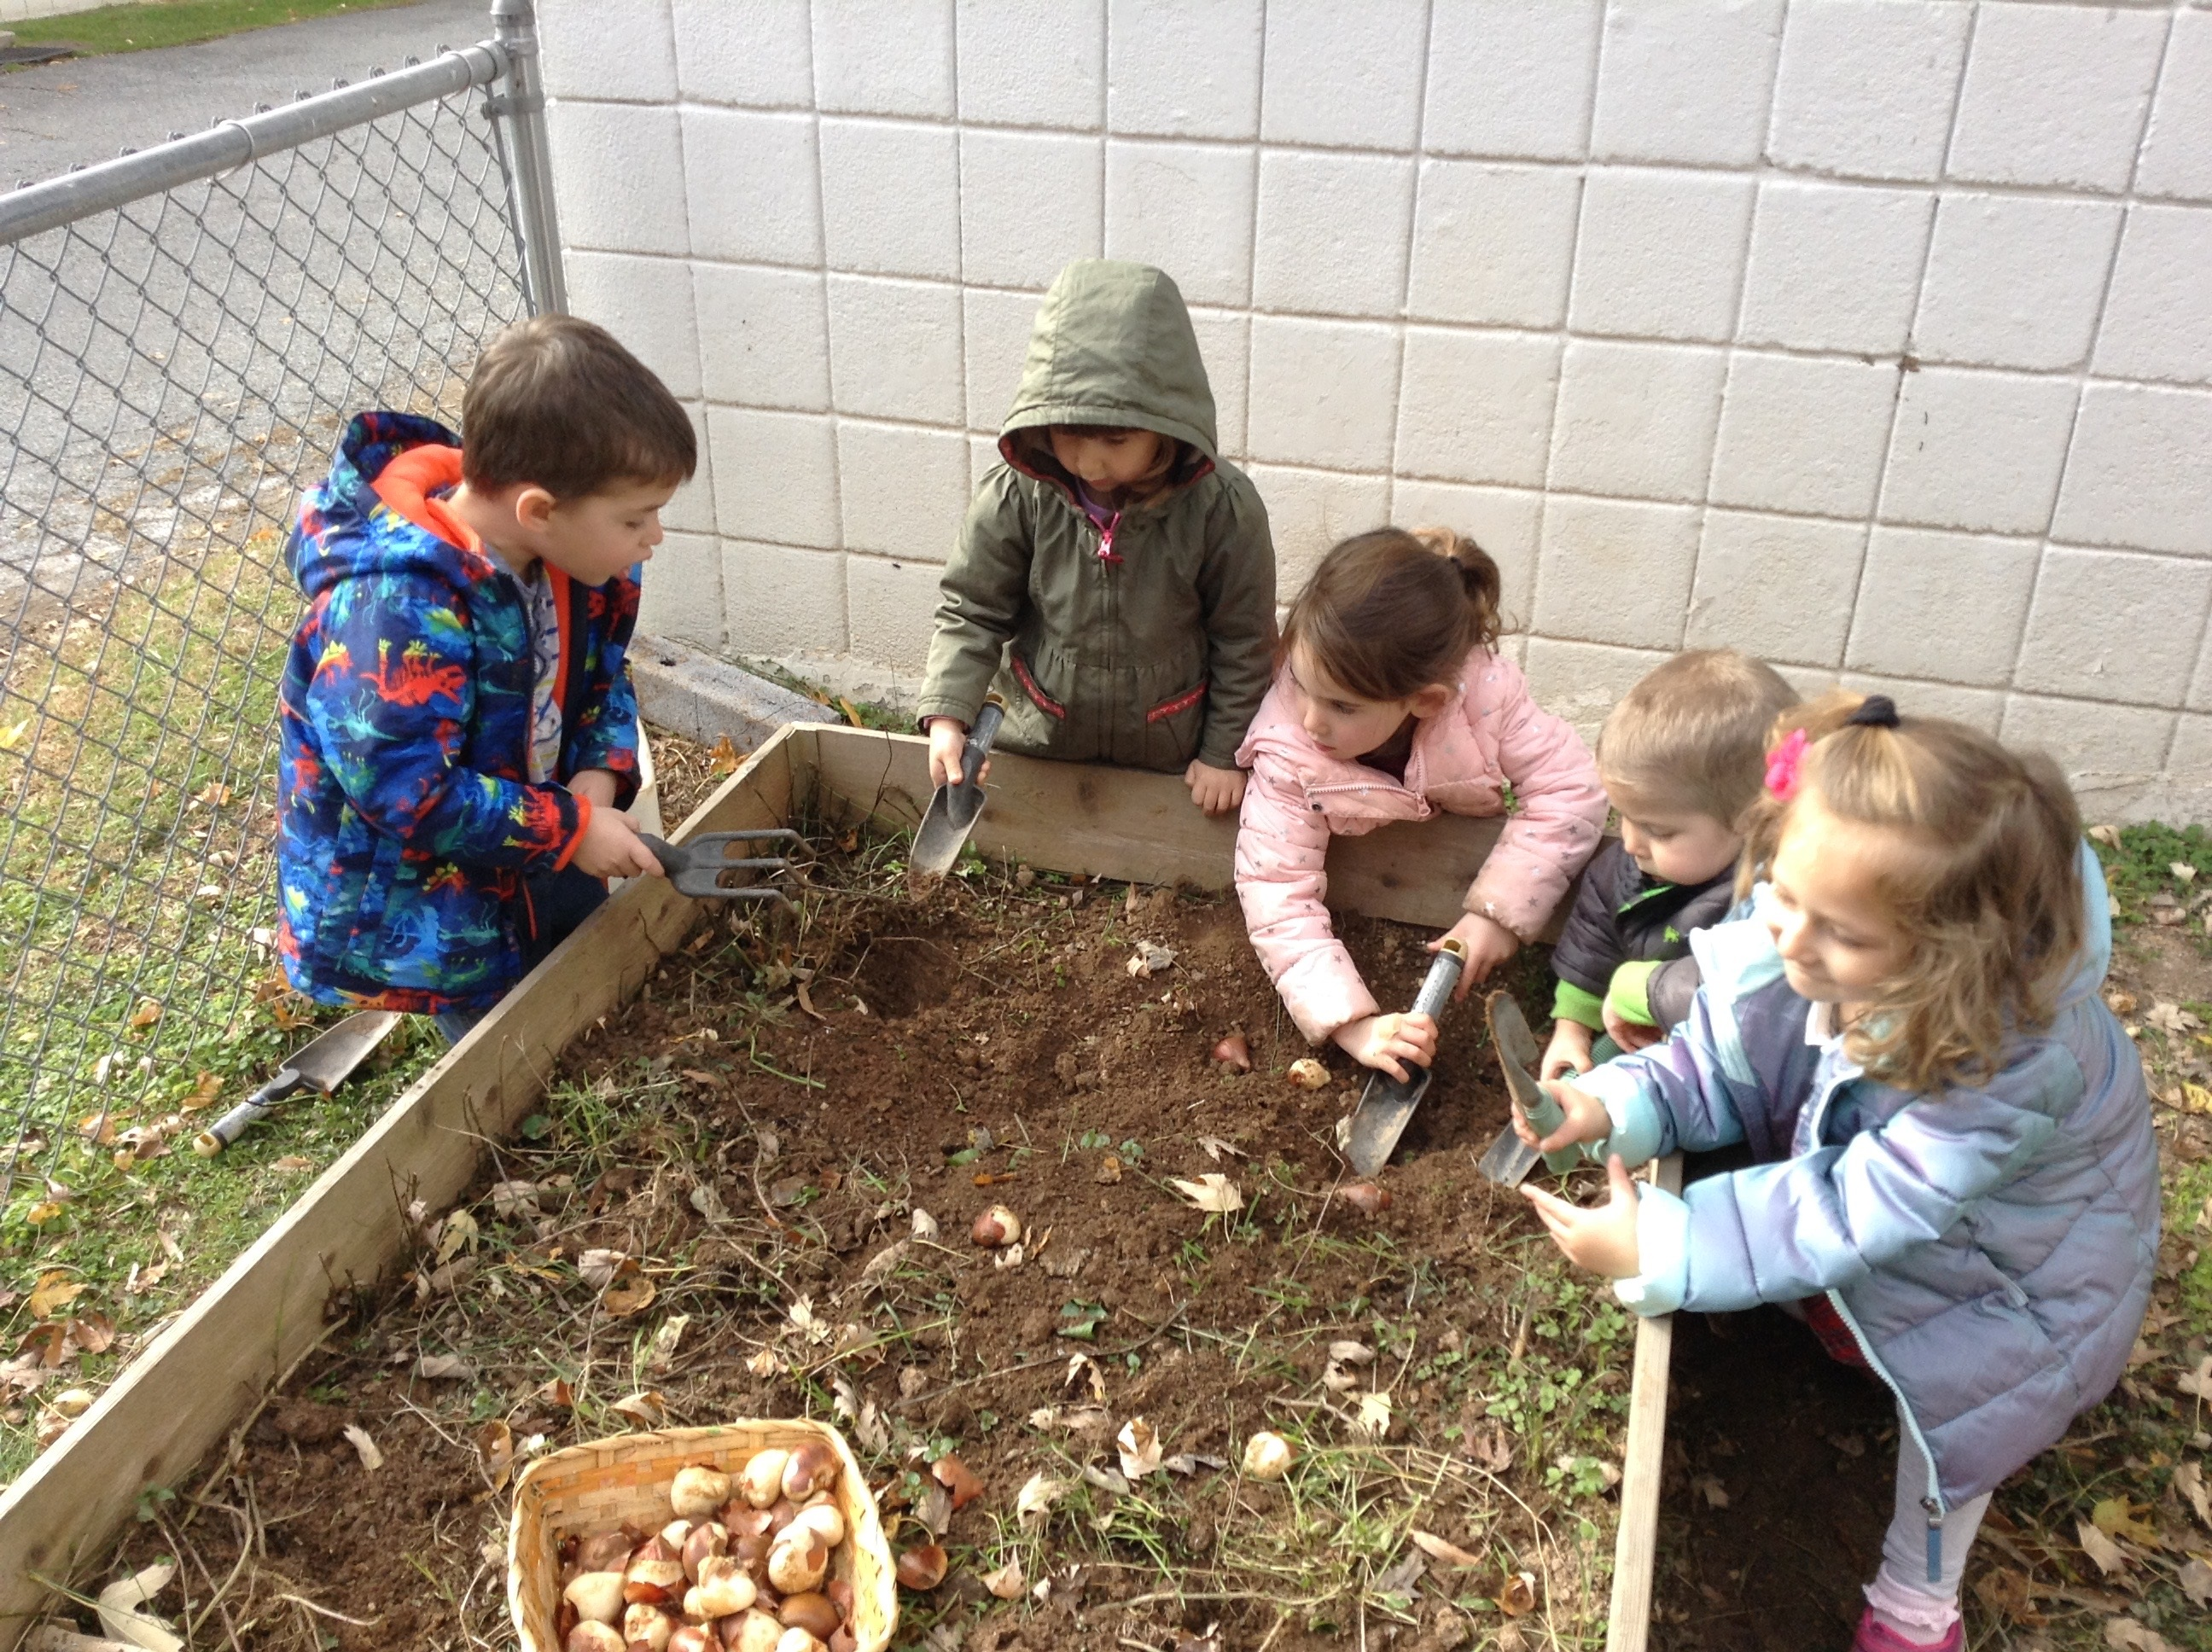 Planting bulbs. (Threes)